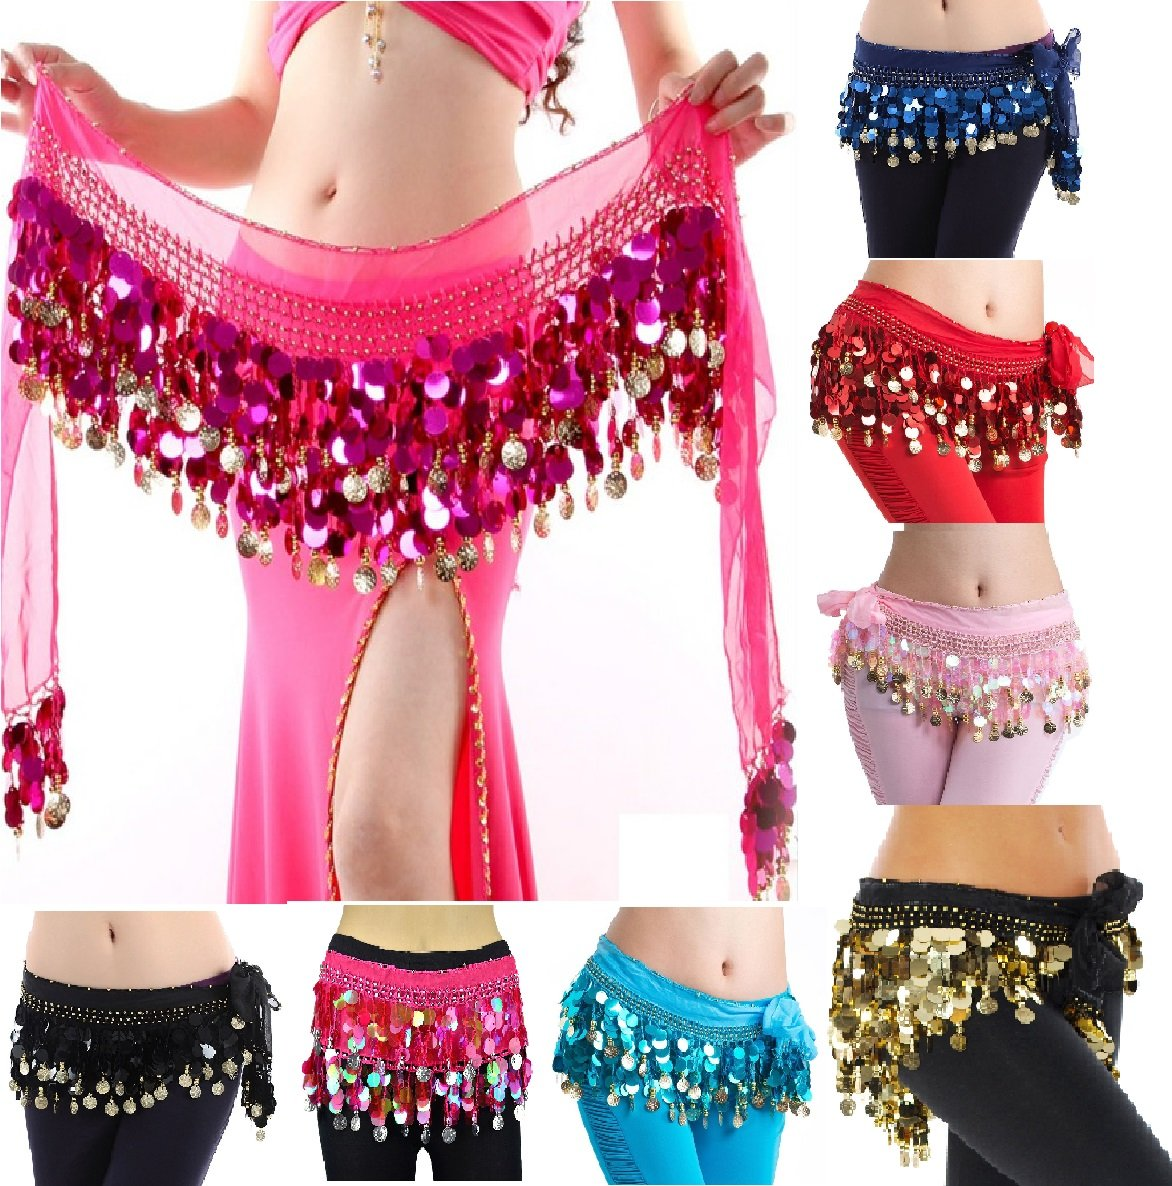 Buy Vritraz Women S Chiffon Belly Dance Hip Scarf Waistband Belt Skirt With128 Ringy Golden Coins 128 Rose Online At Low Prices In India Amazon In